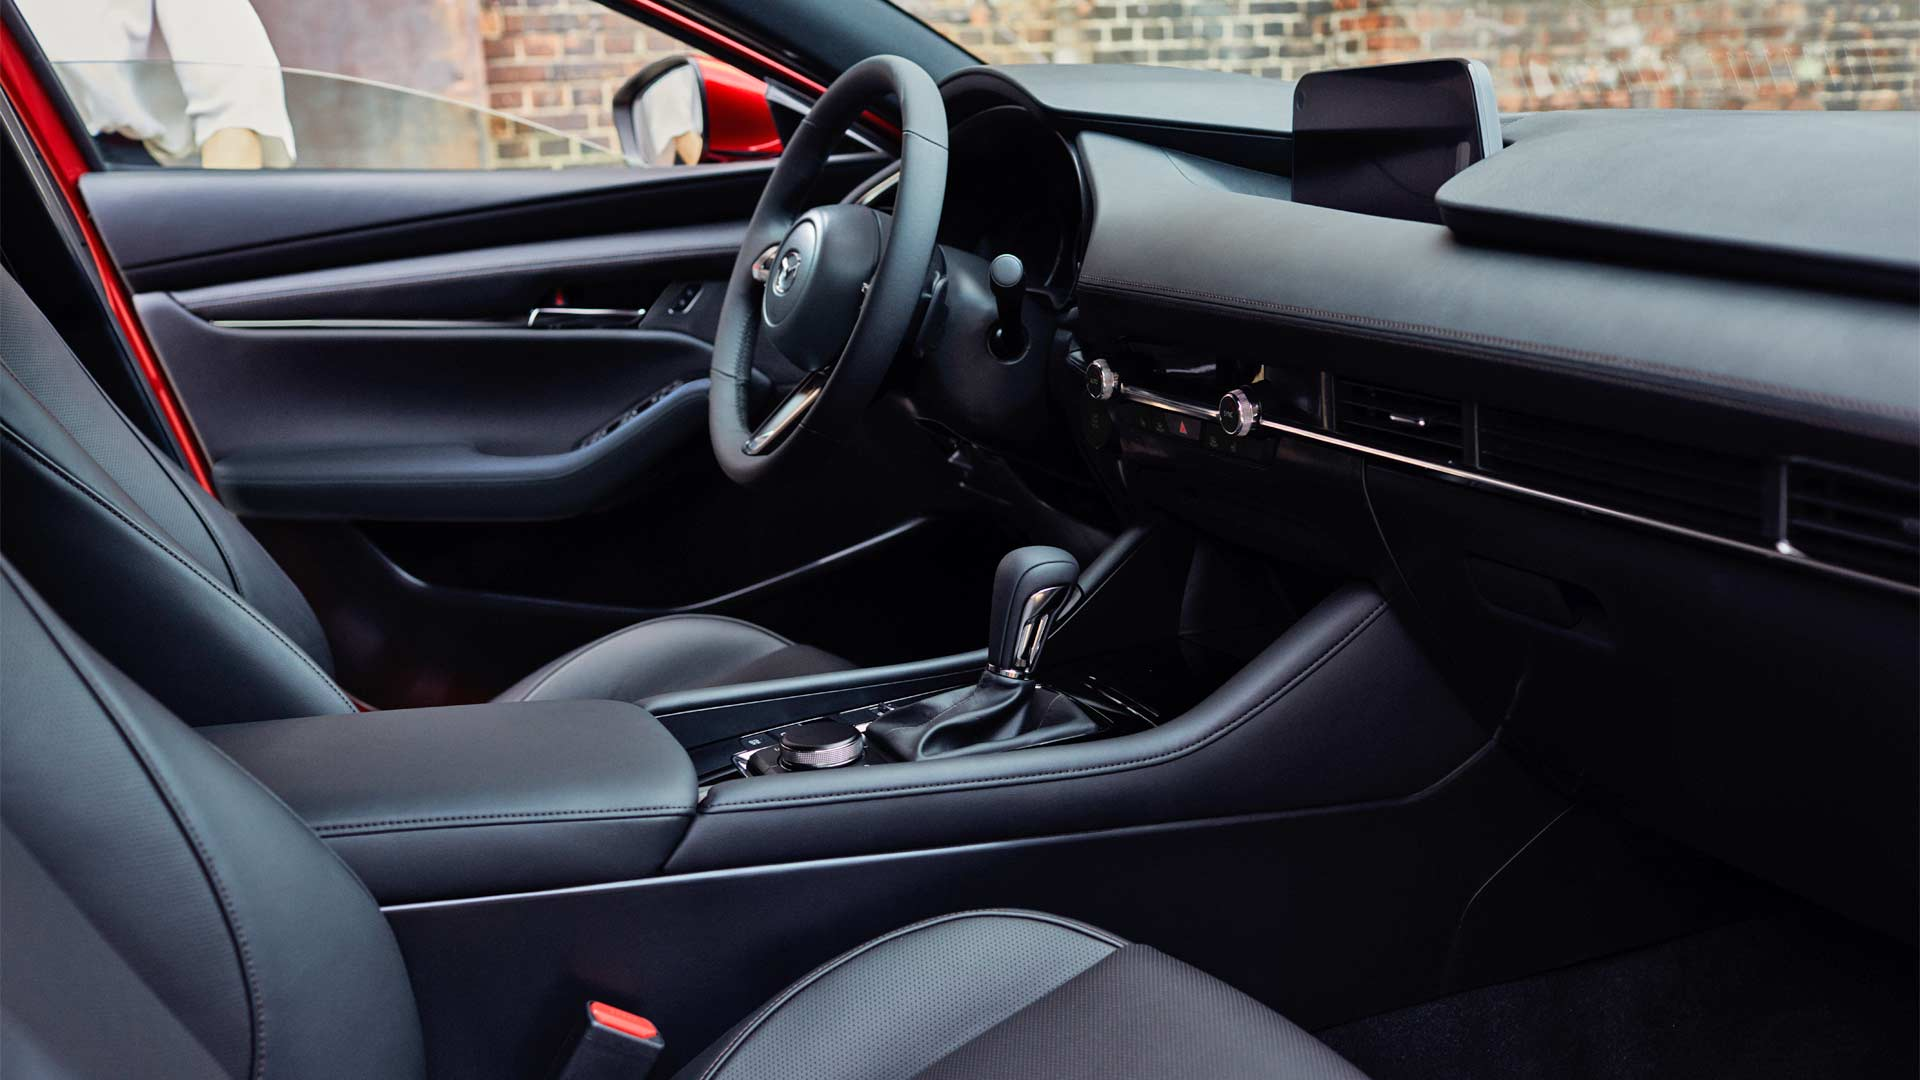 2019-Mazda-3-Hatchback-Interior